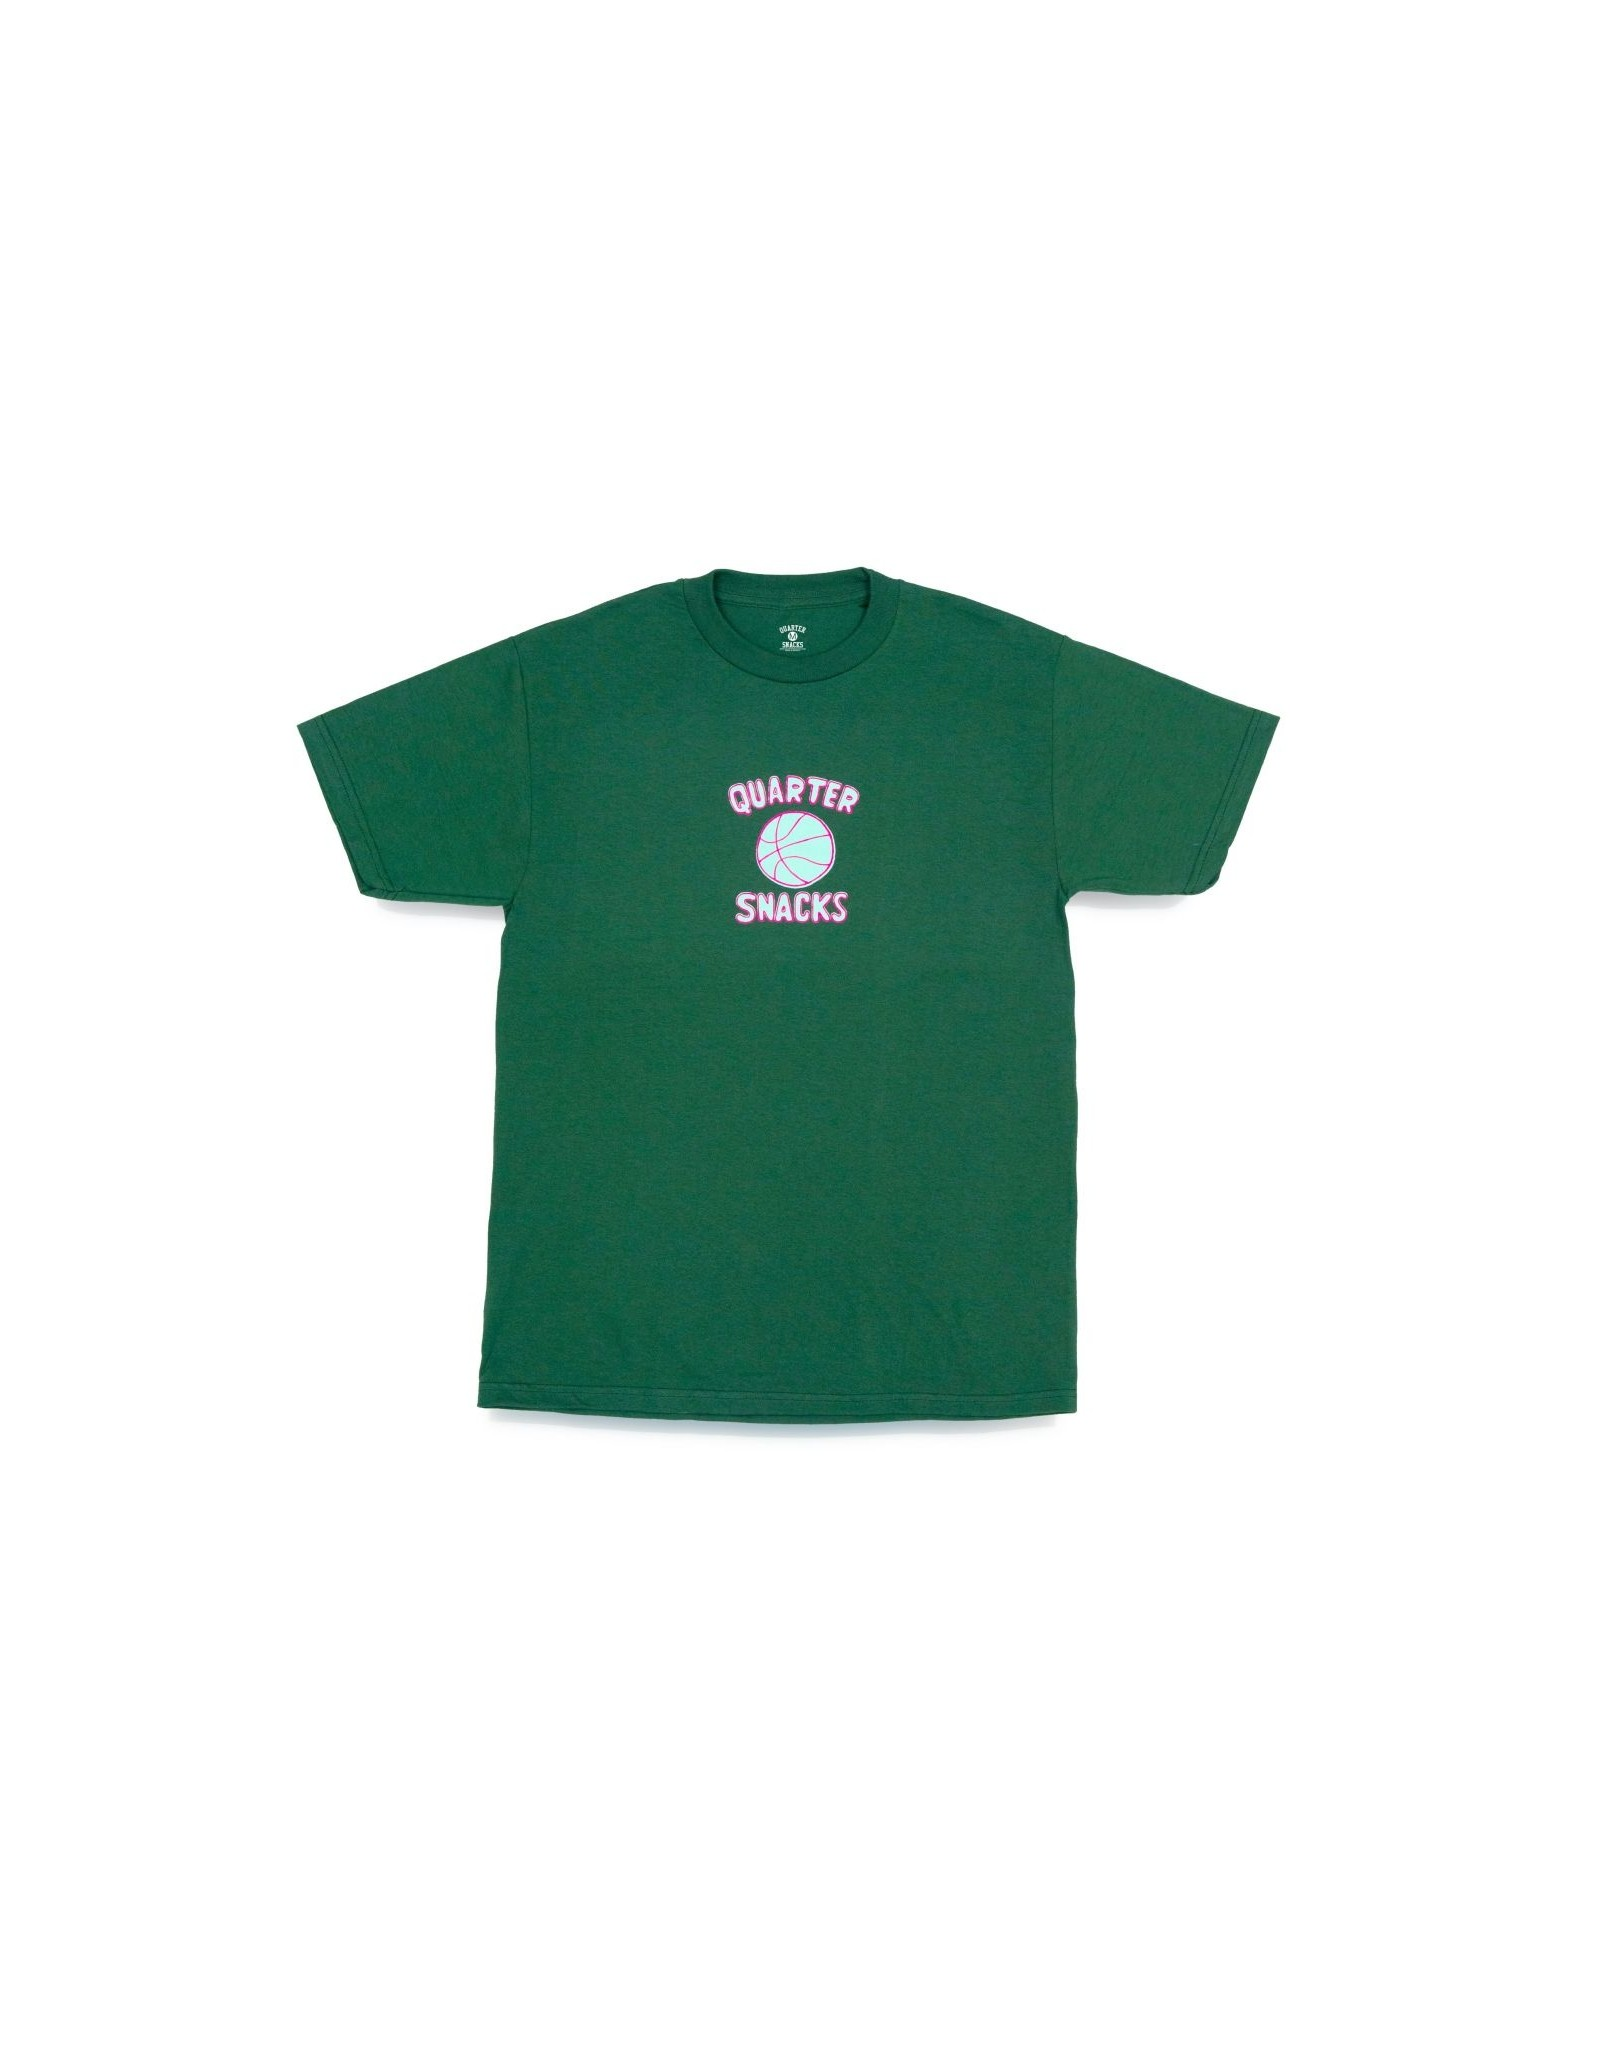 QuarterSnacks Ball Is Life Tee - Forest Green